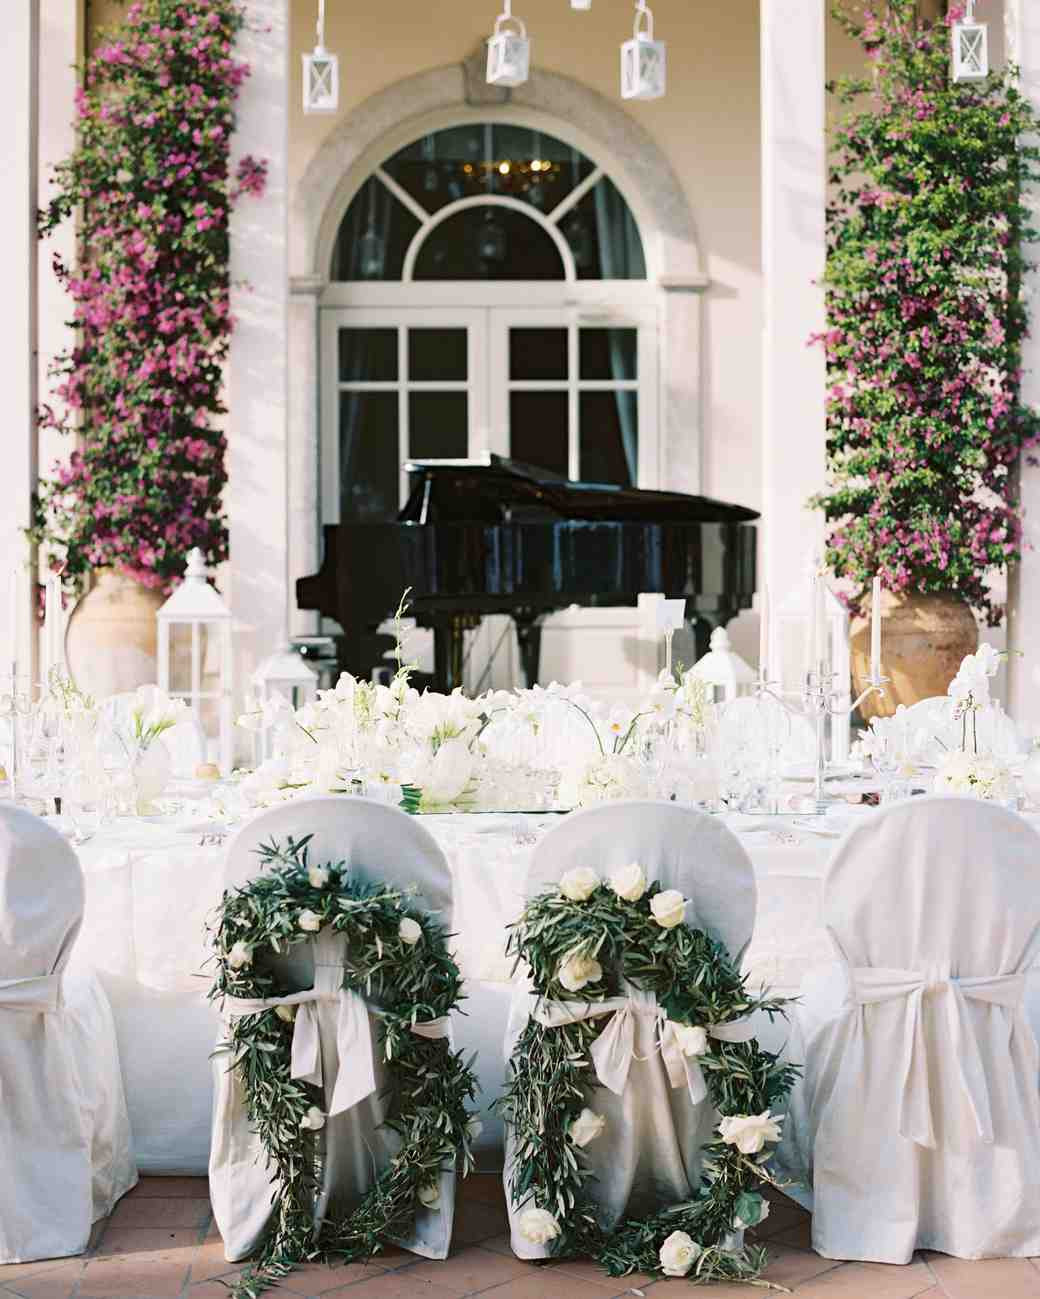 wholesale glass vases international of 79 white wedding centerpieces martha stewart weddings intended for reception chairs